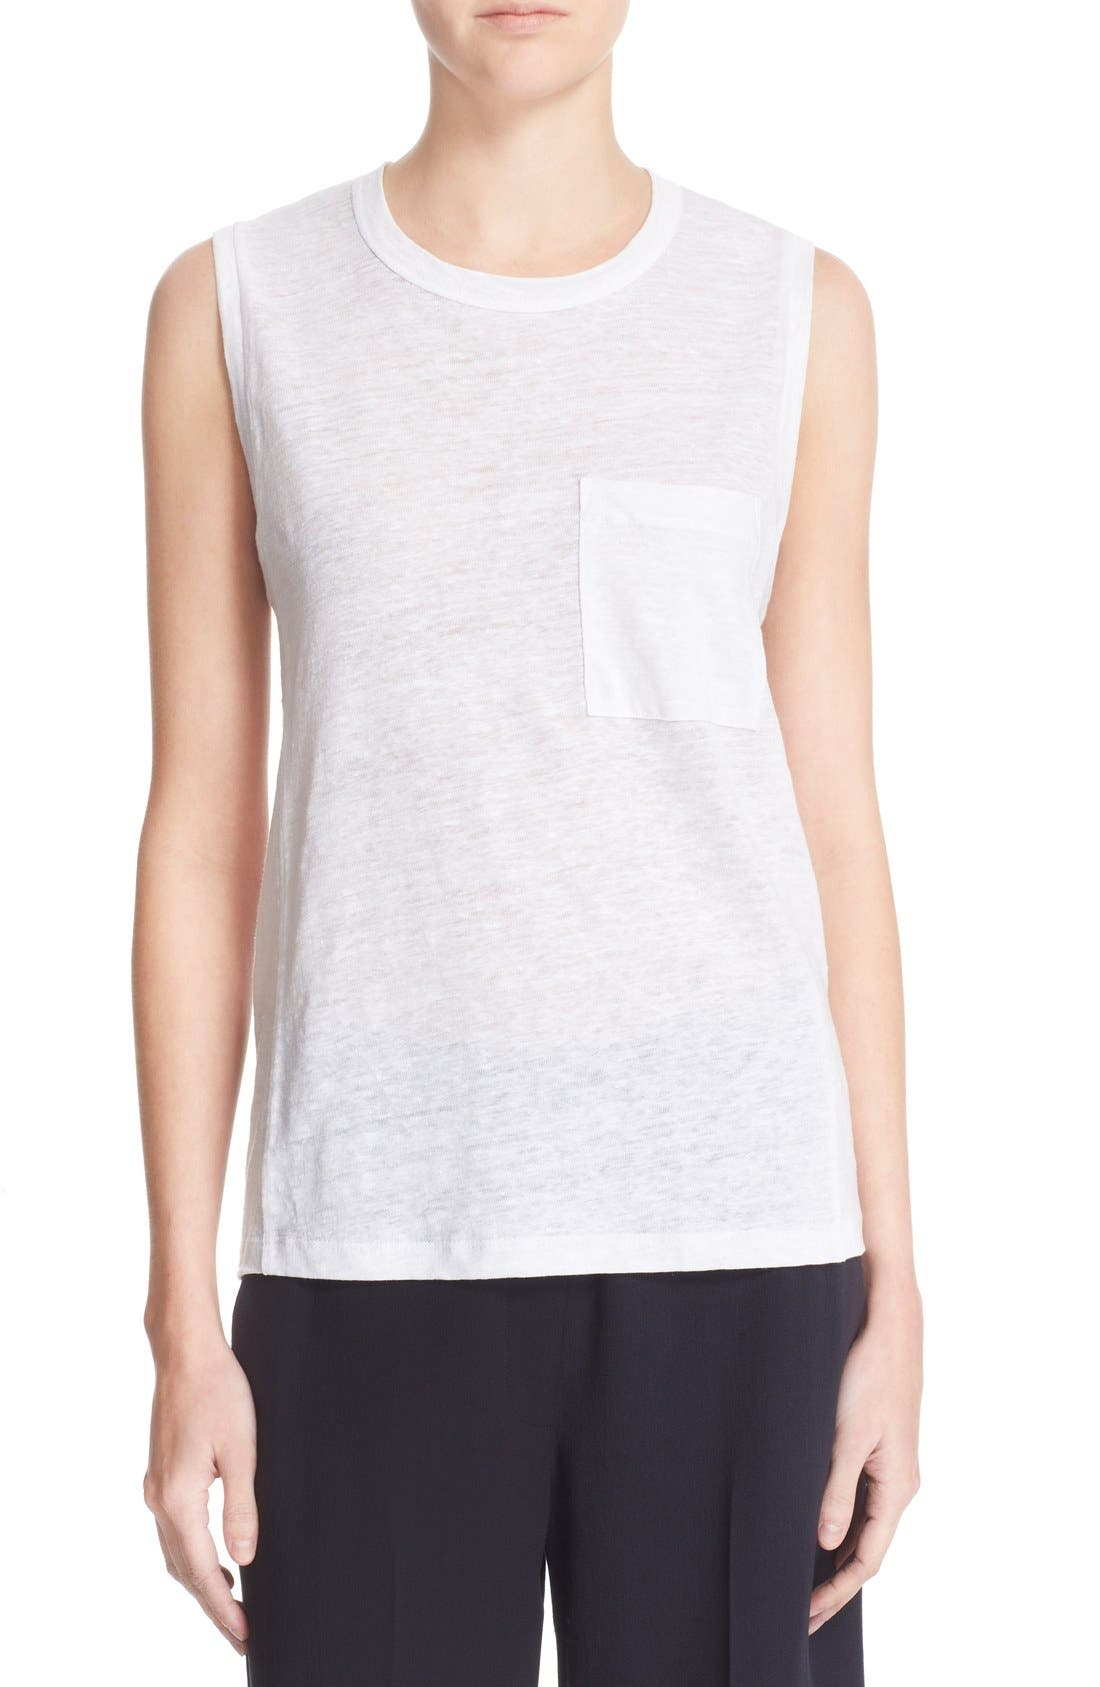 Sean Linen Muscle Tee,                         Main,                         color, White